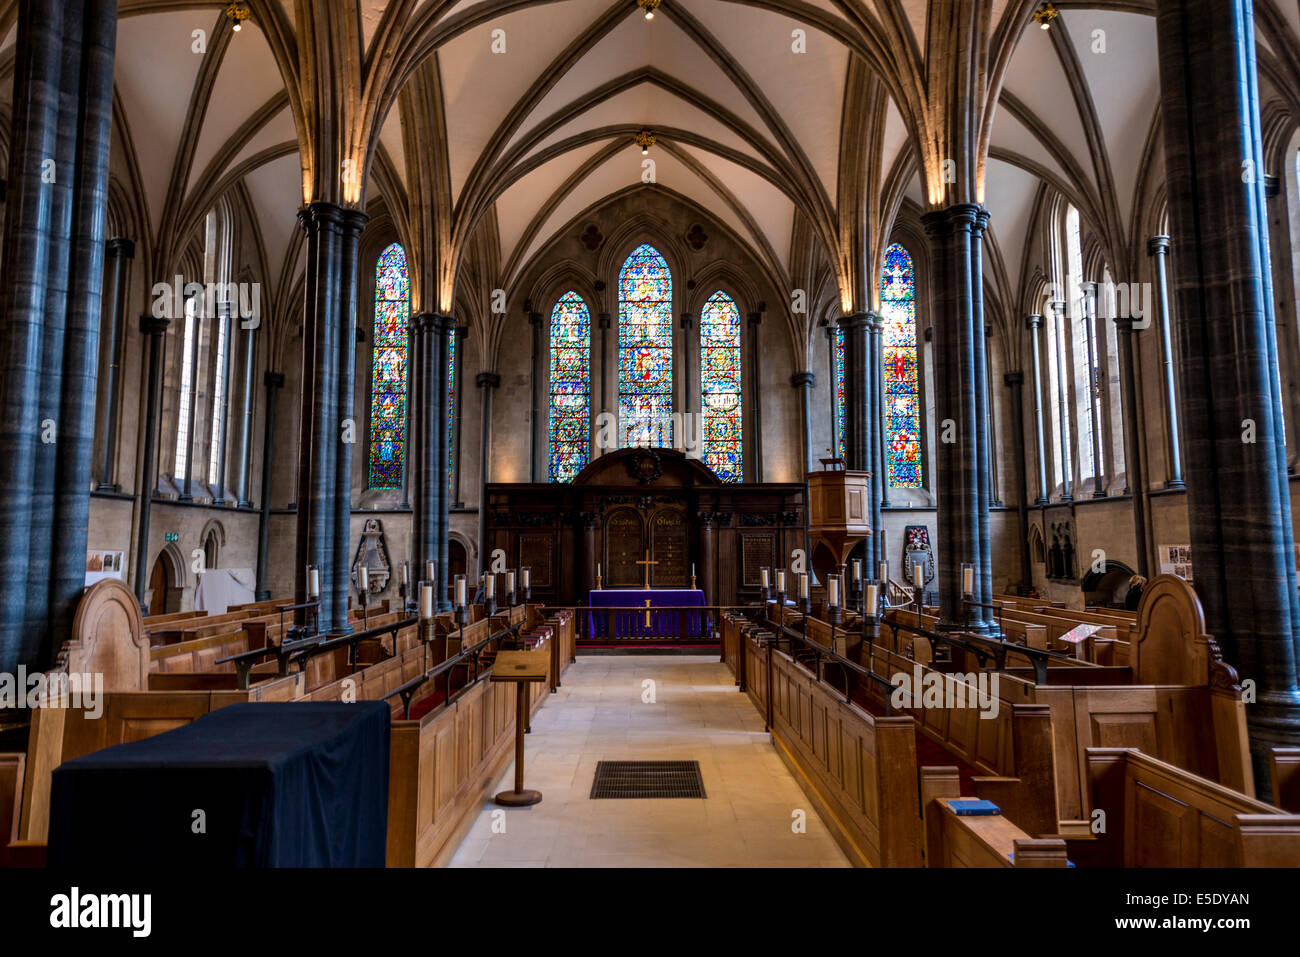 The Temple Church is a late 12th Century church in London located between Fleet Street and the River Thames - Stock Image